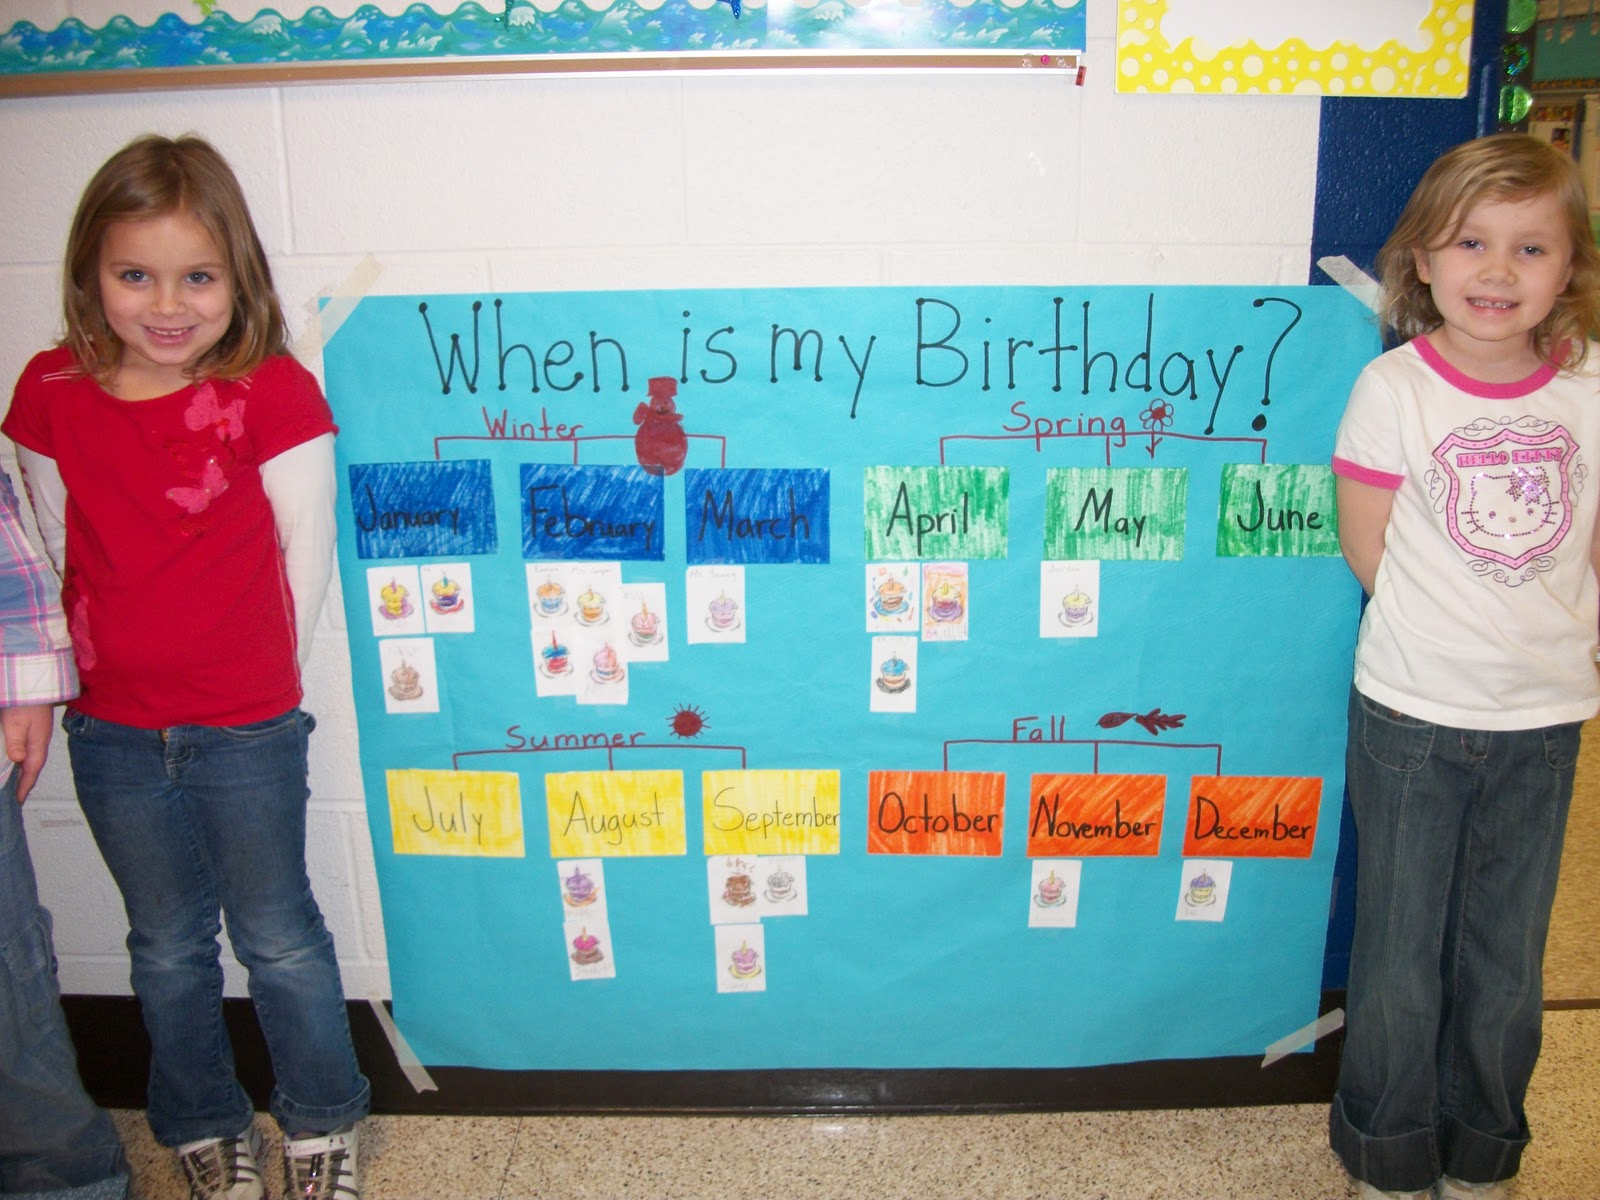 Tyra and hailey helped me put up our seasons birthday chart ms young